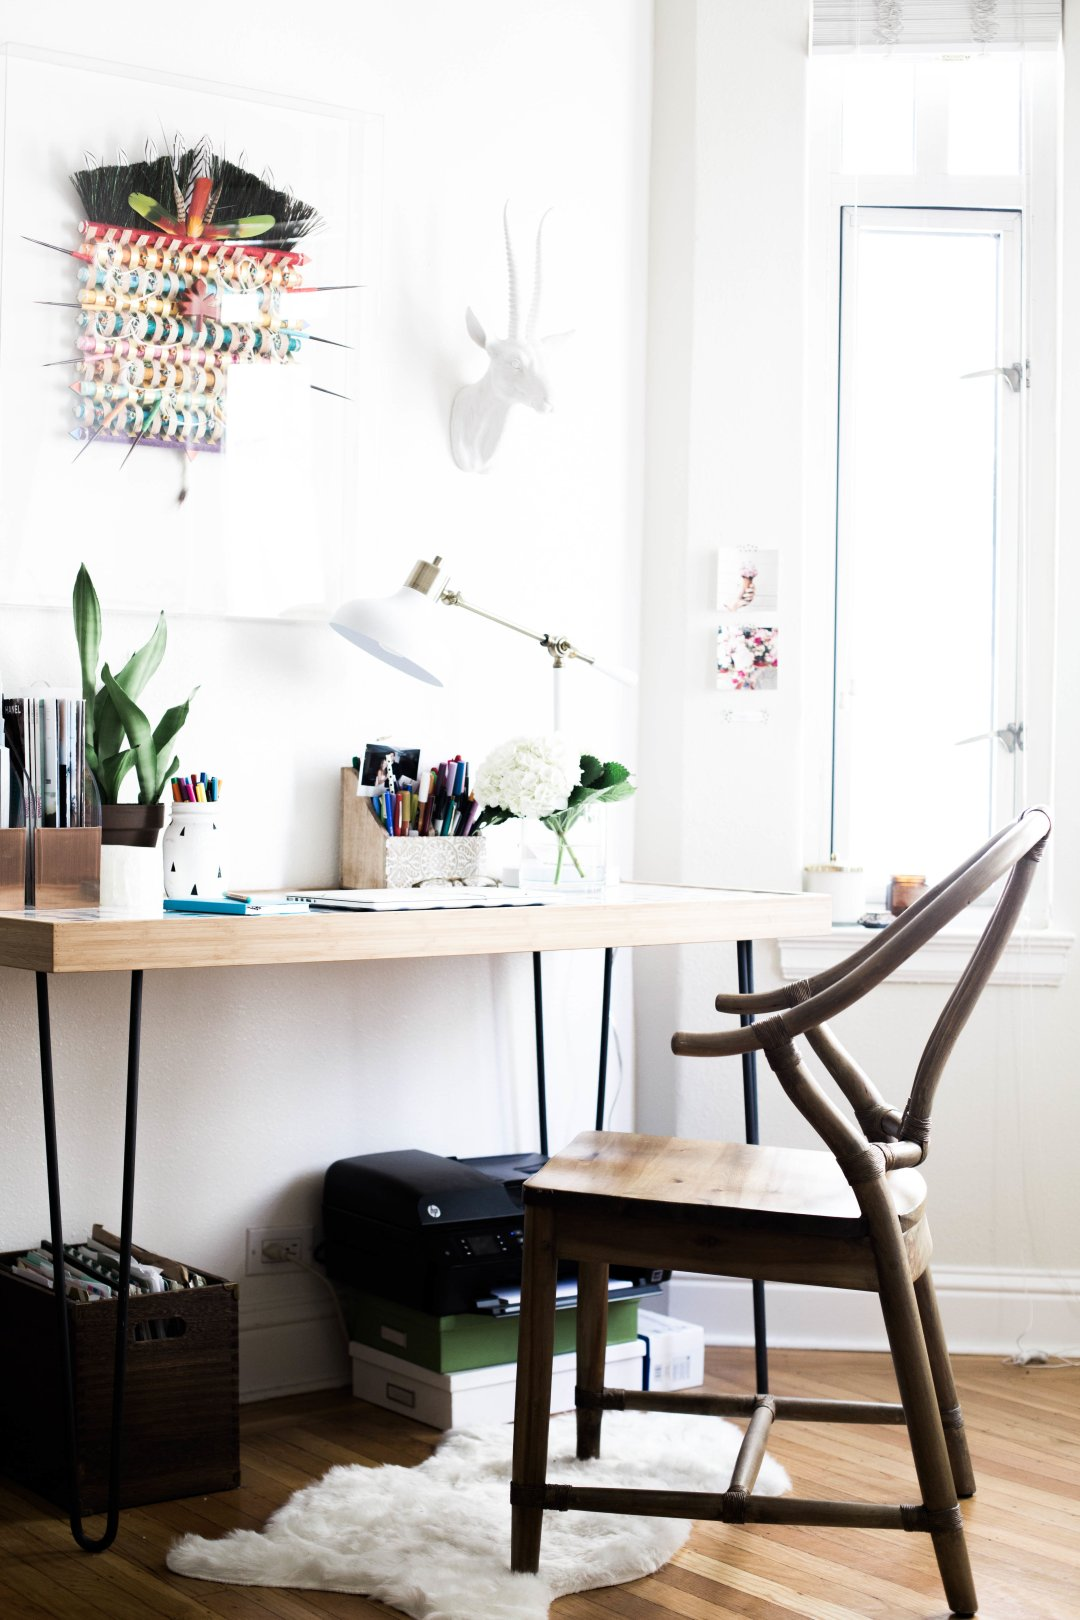 Shopping Resources For Polished Bohemian Style Space